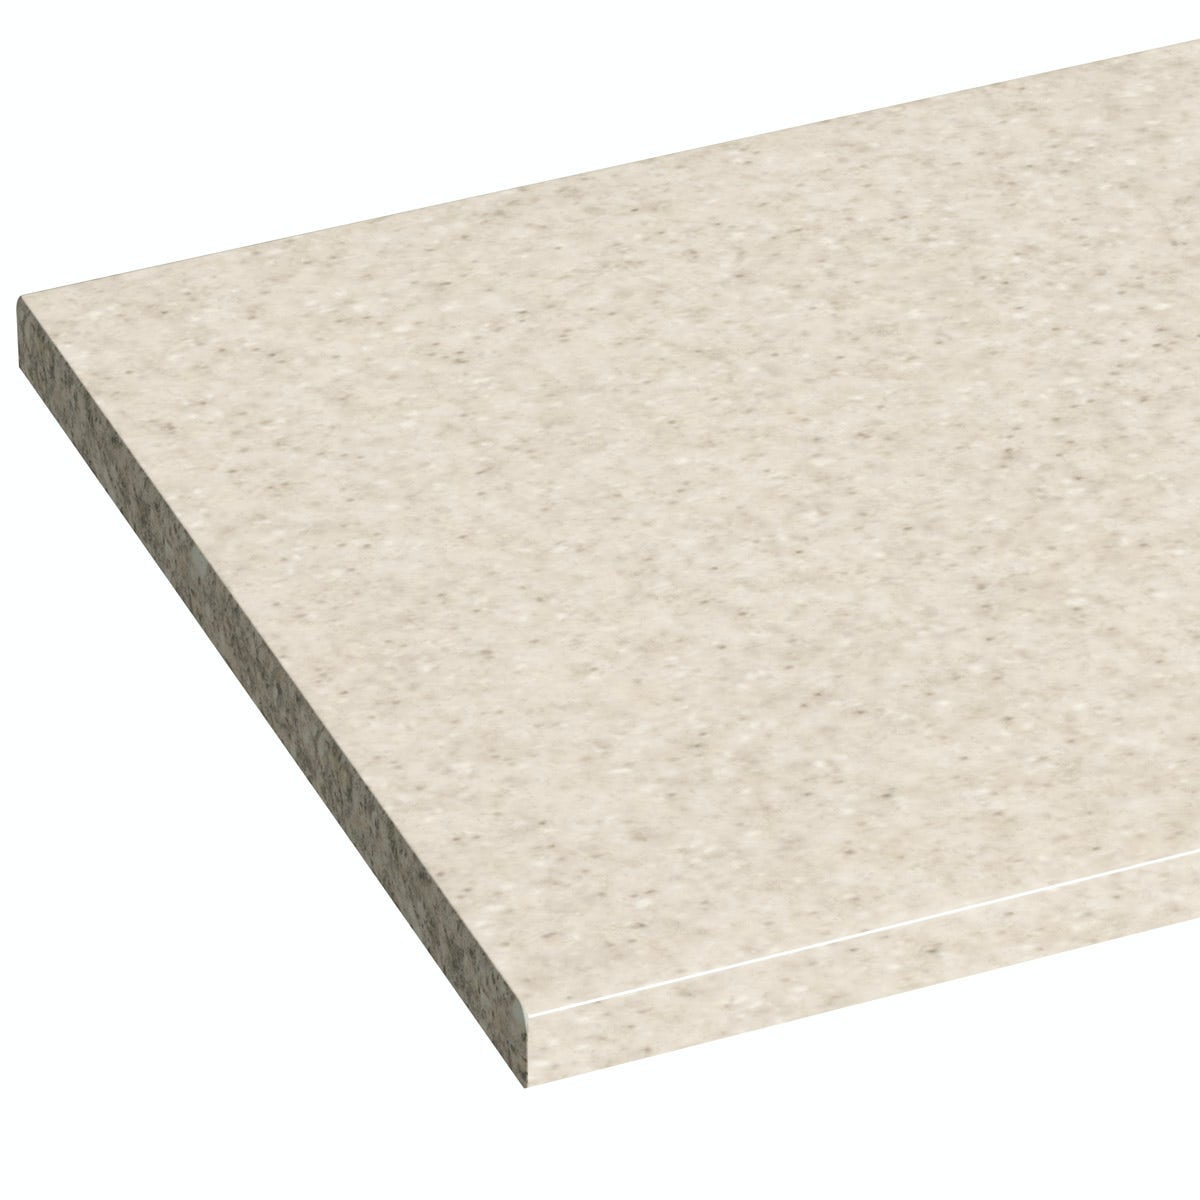 Orchard Wharfe glacial beige laminate worktop 1.5m